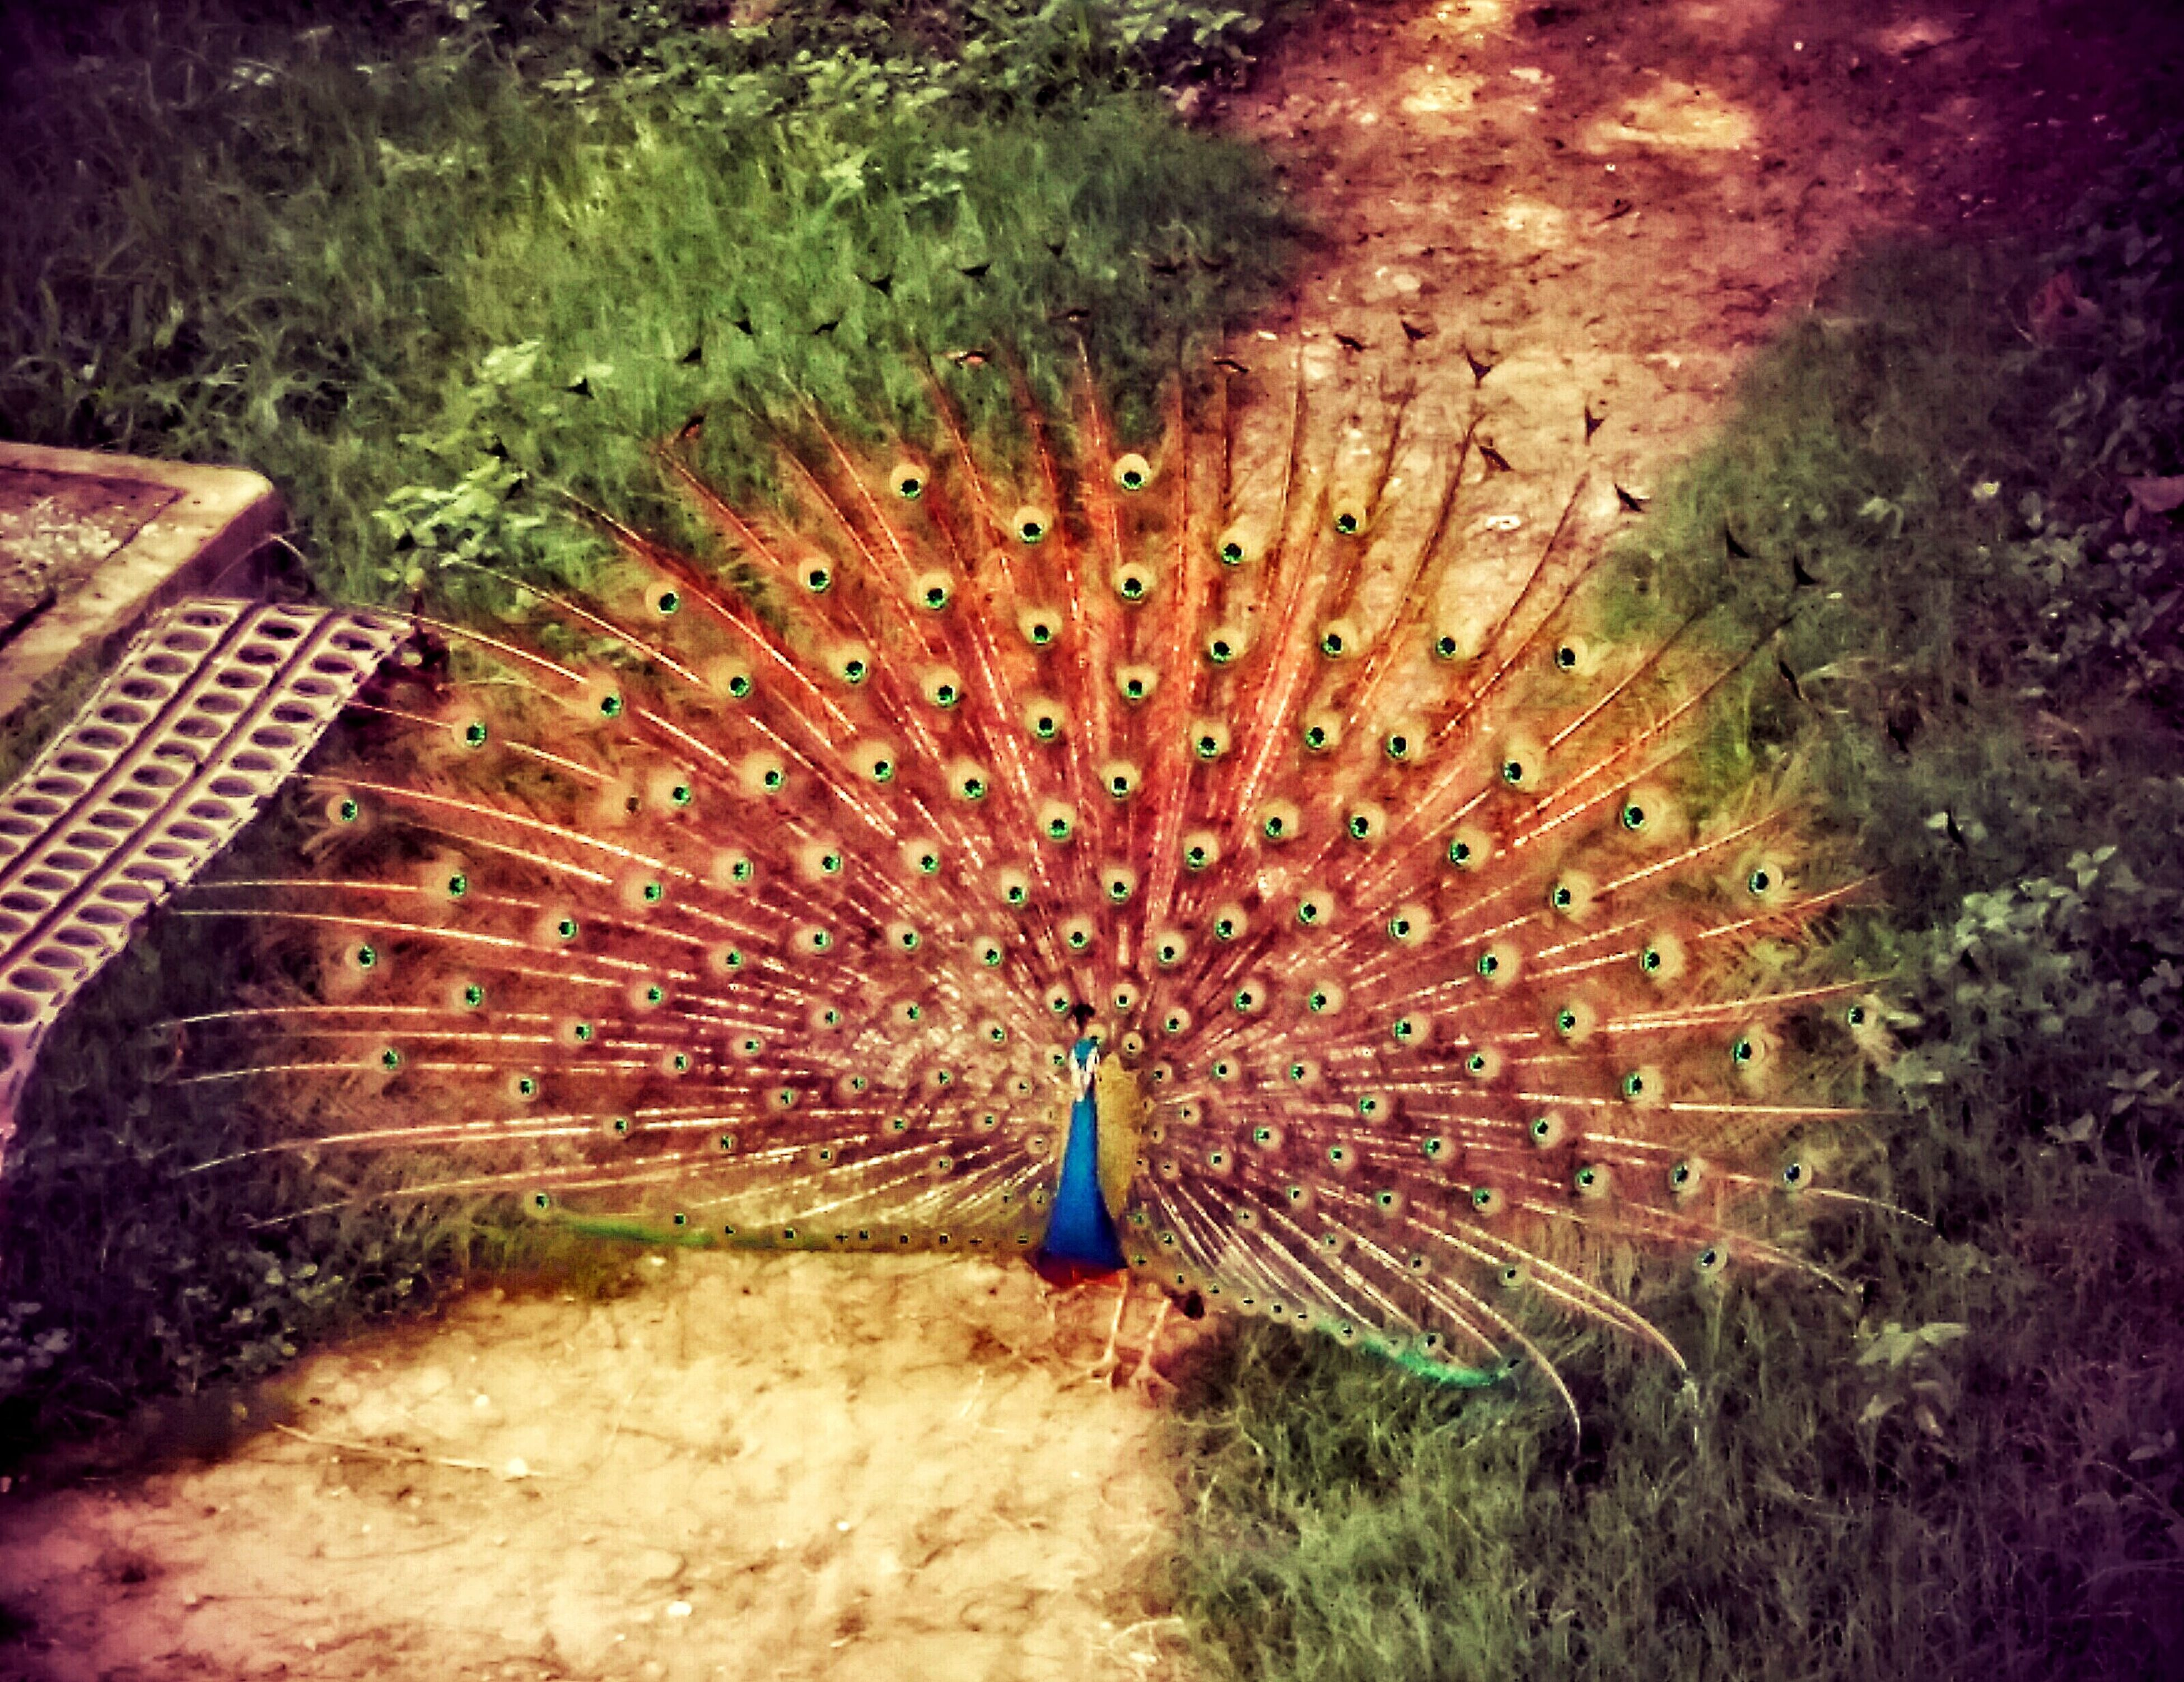 animal themes, one animal, animals in the wild, wildlife, full length, bird, high angle view, nature, peacock, field, outdoors, feather, beauty in nature, day, grass, rock - object, natural pattern, plant, rear view, one person